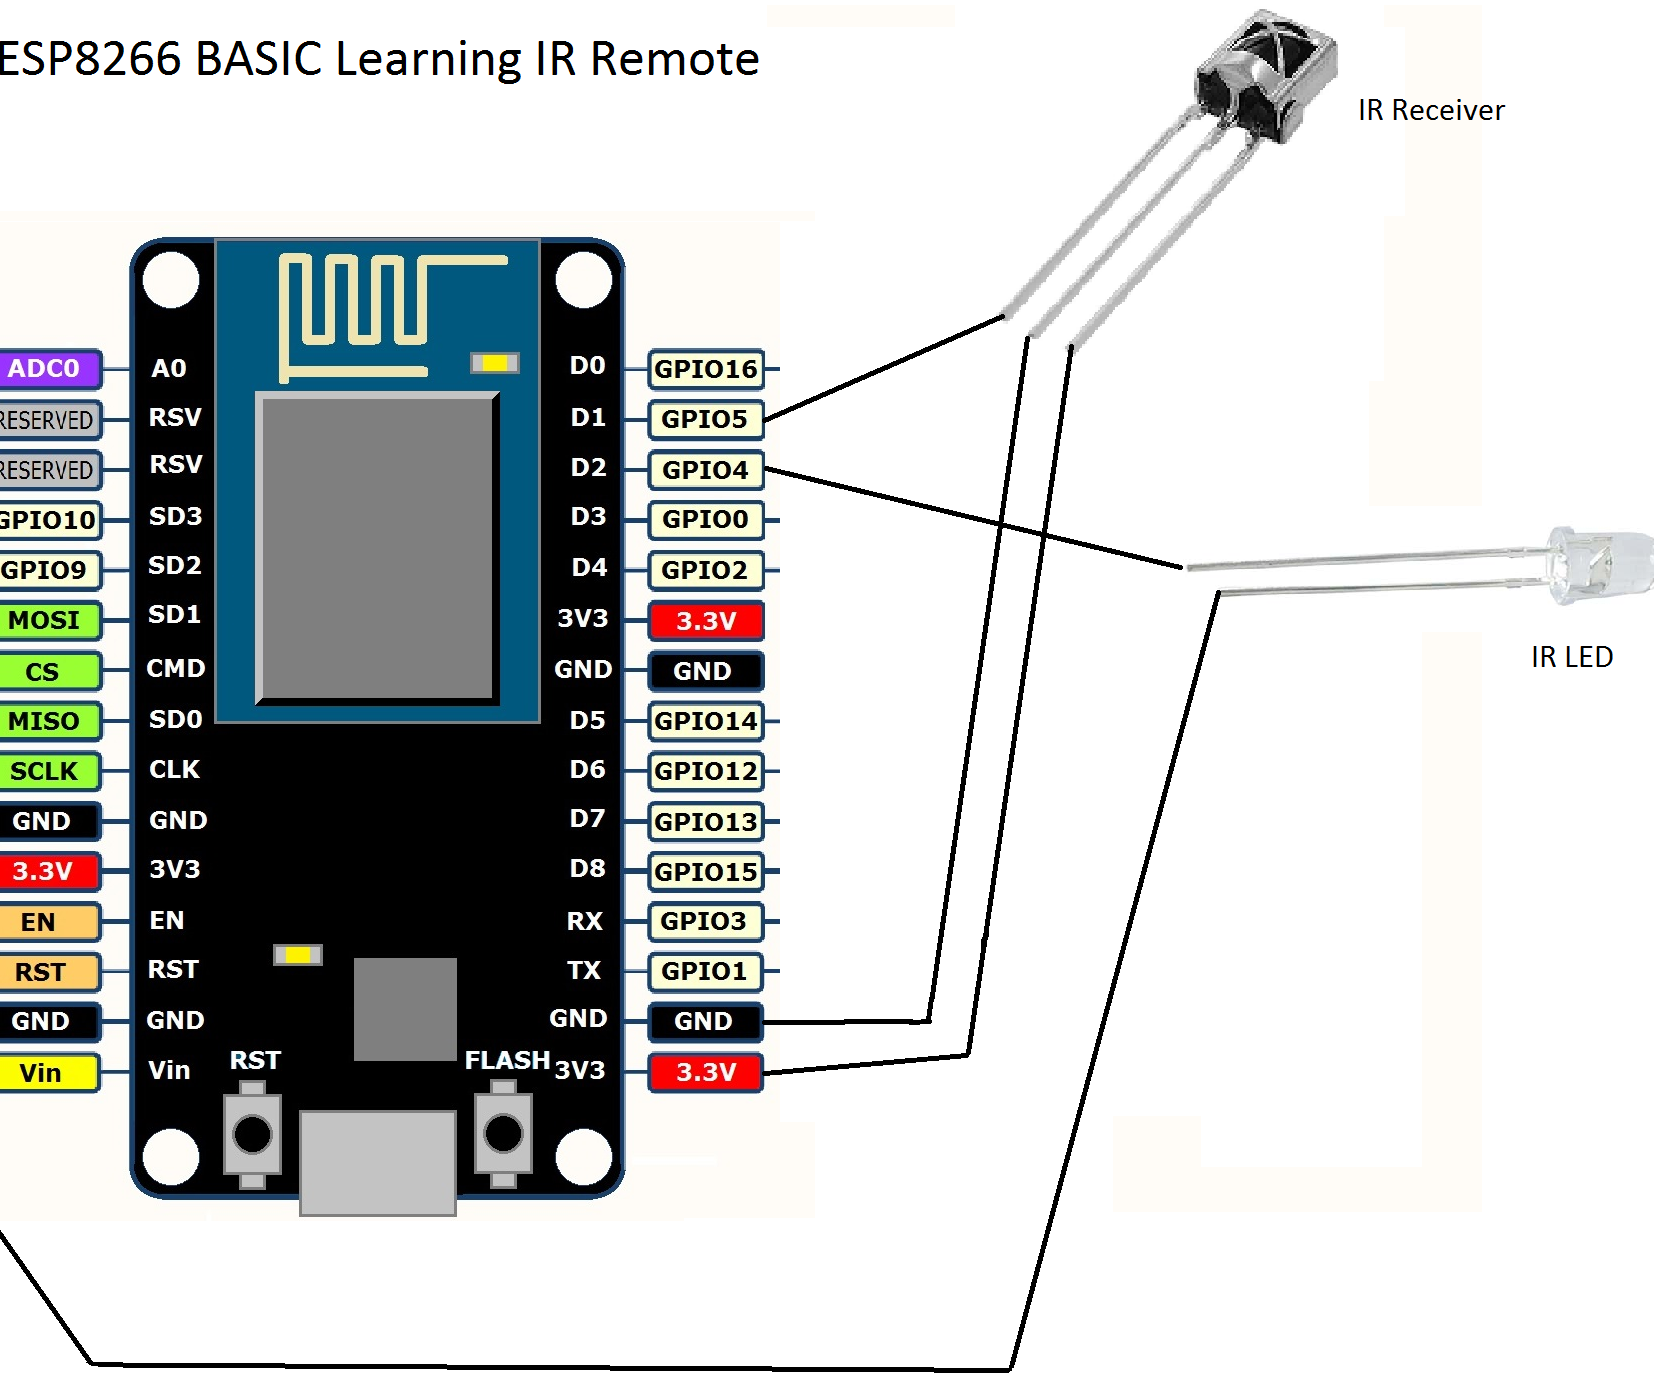 Easiest ESP8266 Learning IR Remote Control Via WIFI